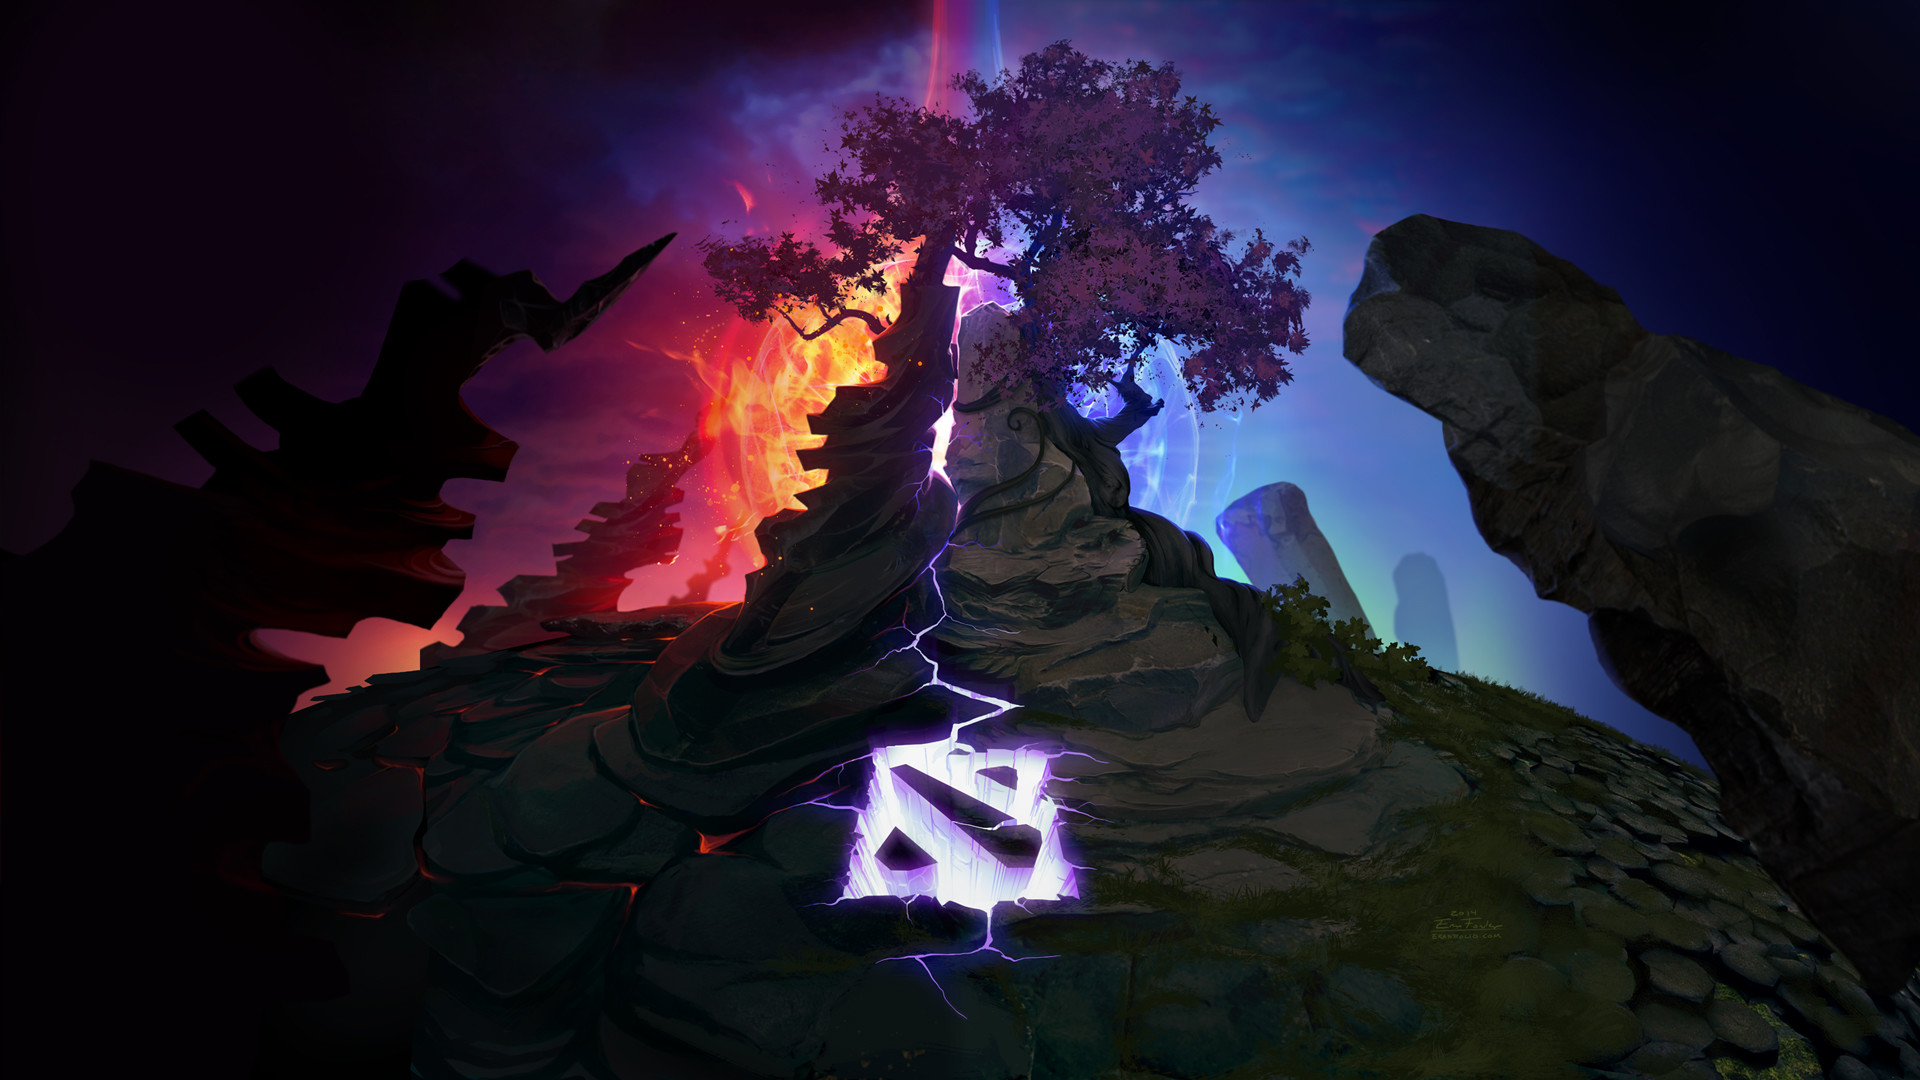 Dota Wallpapers HD, Desktop Backgrounds, Images and Pictures 1920×1080 Dota 2  Wallpapers